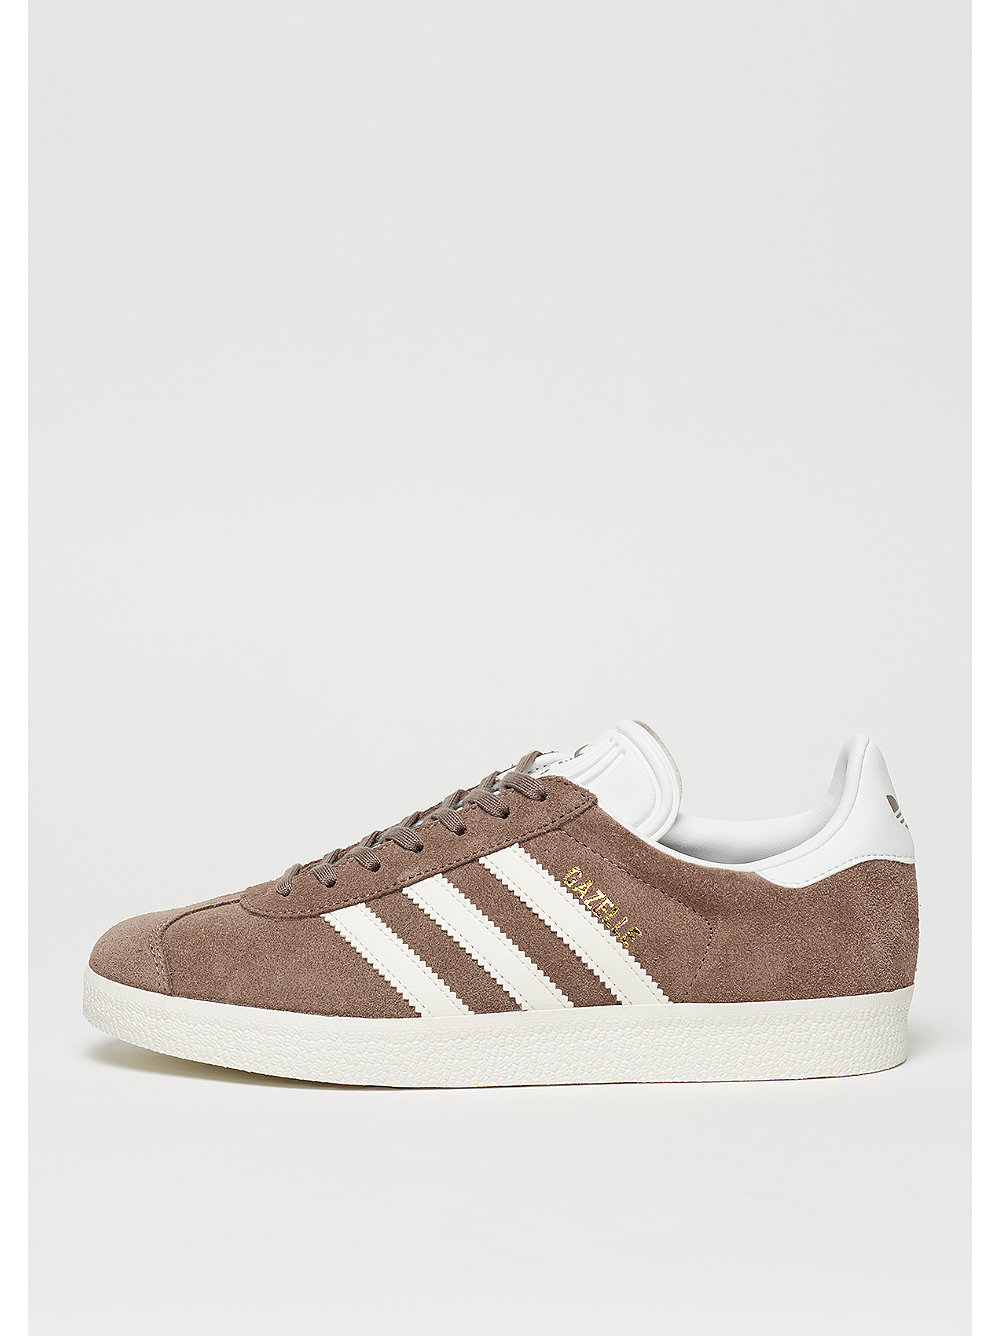 newest bbbc1 136e0 ... cheapest der gazelle trace brown von adidas im snipes onlineshop  associate degree.de d762c 7067d